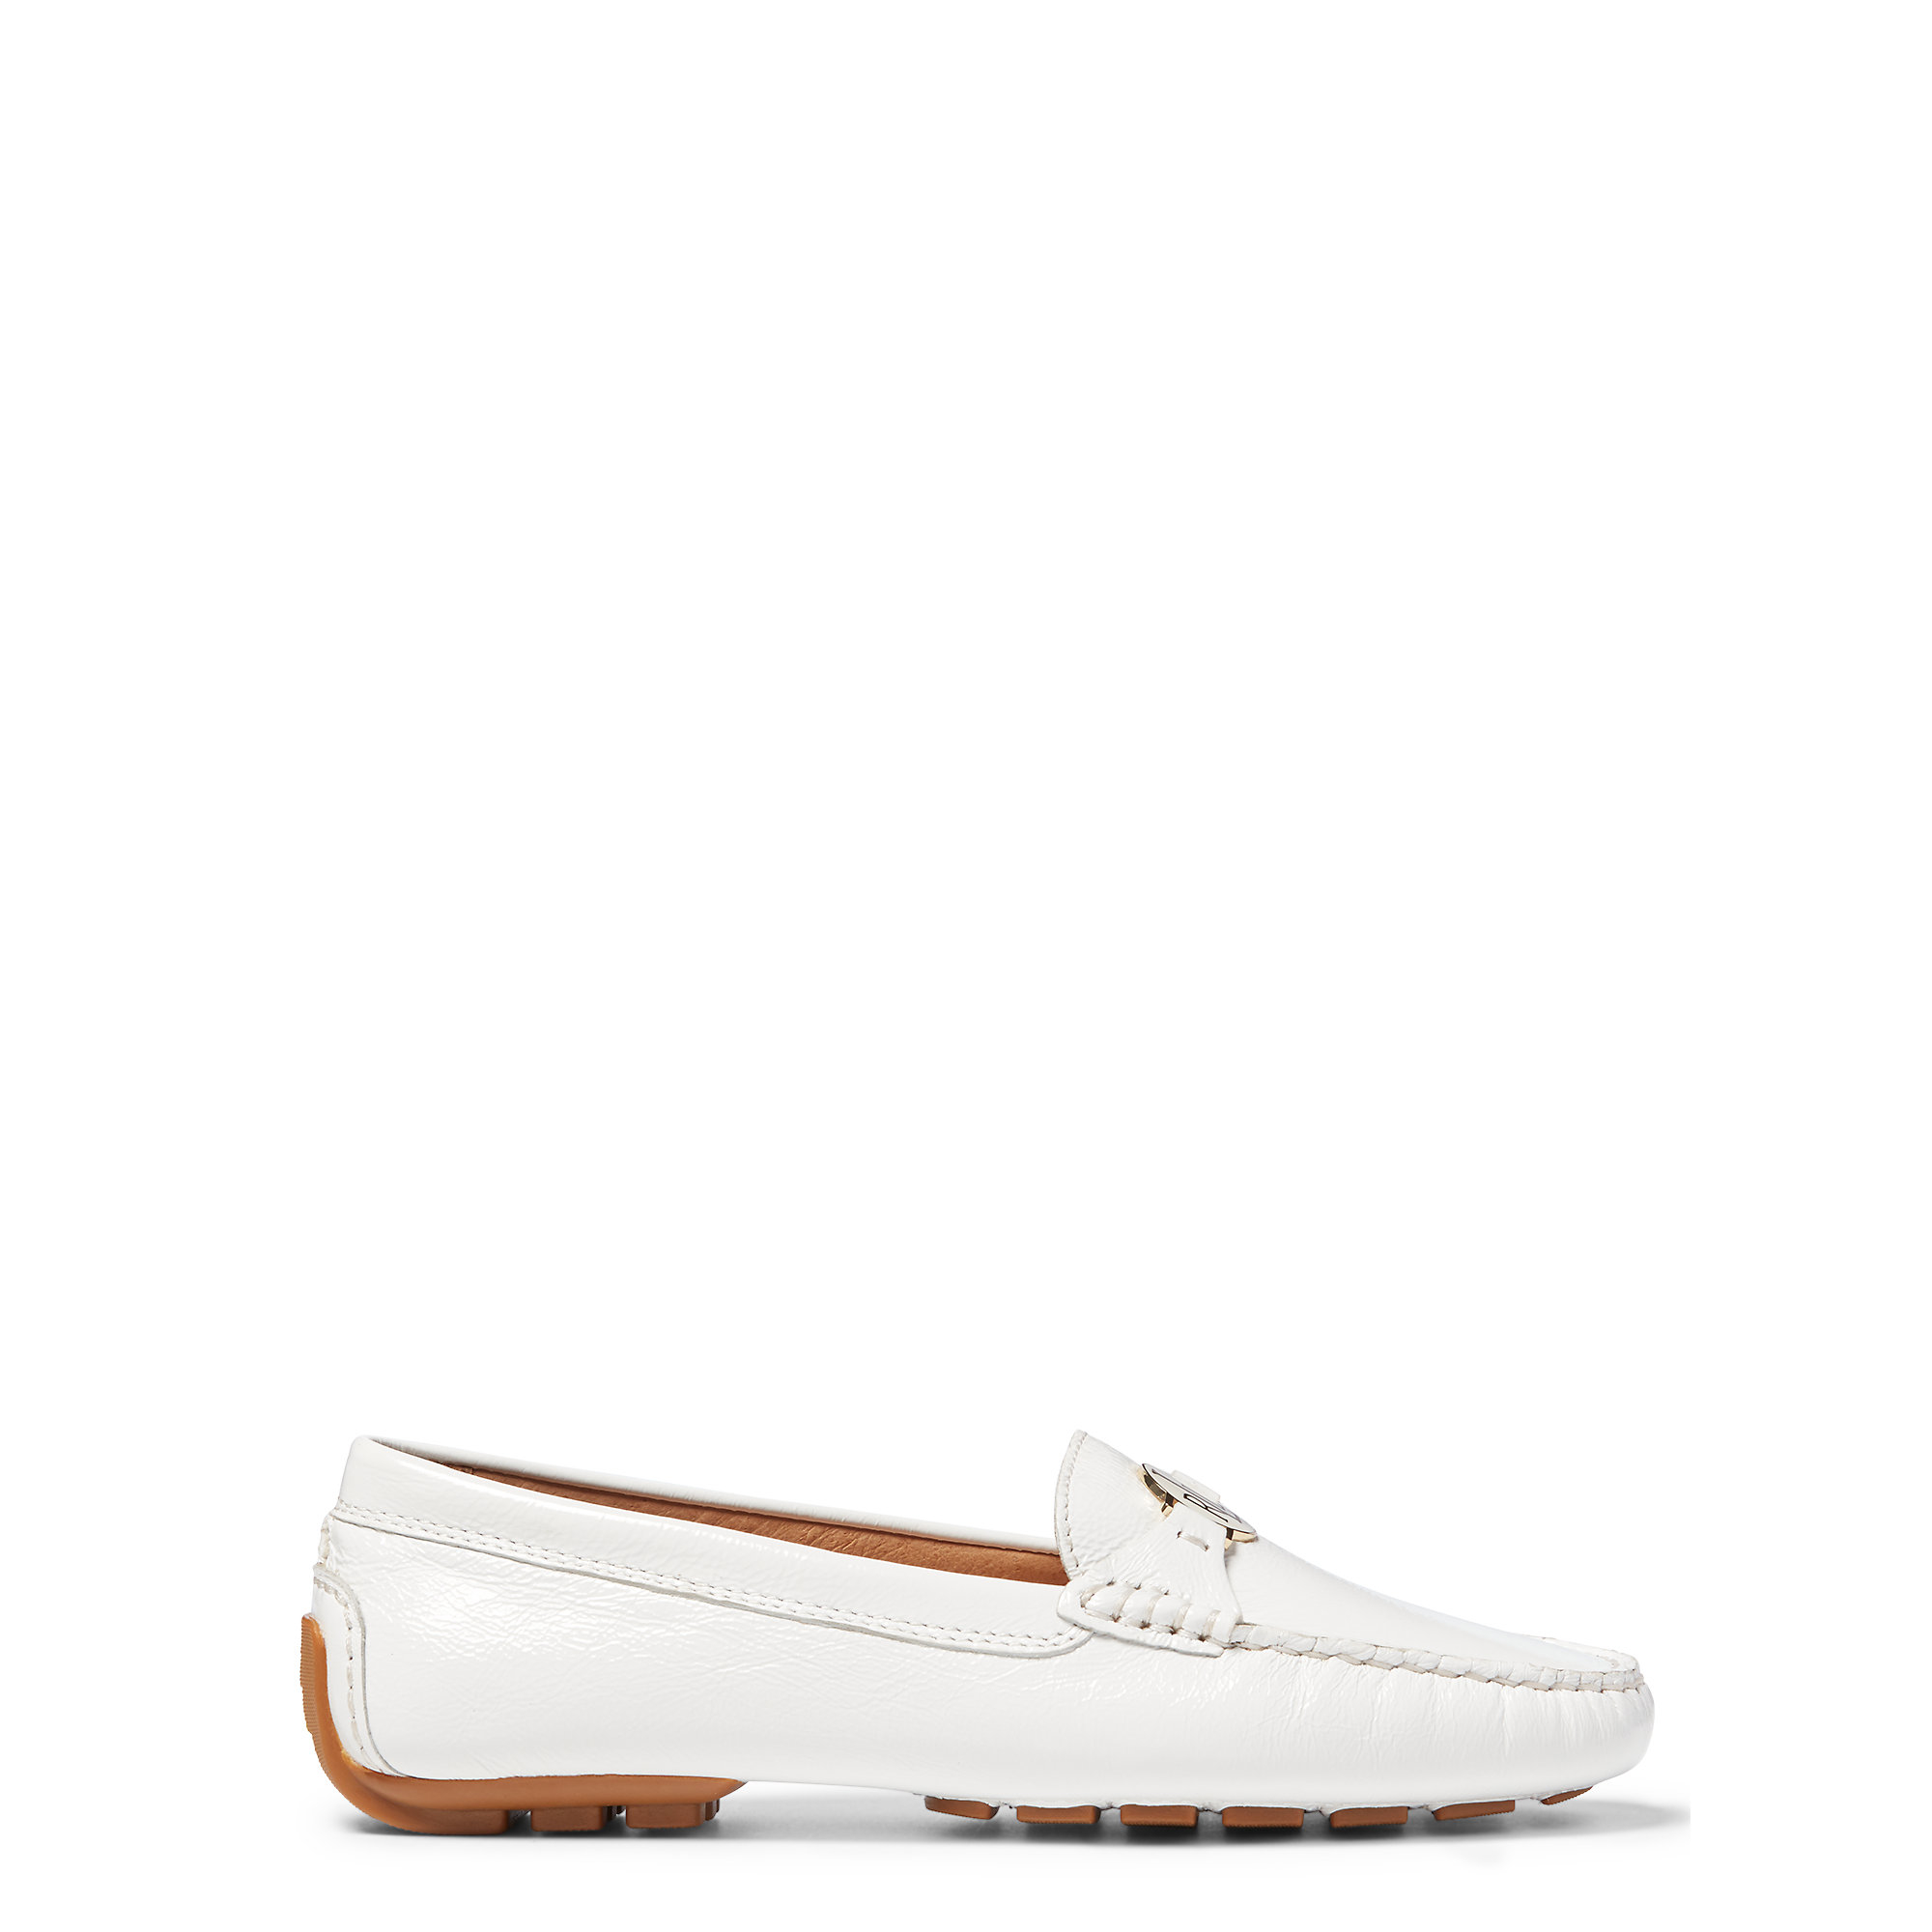 5f0b9e8e673 Lyst - Pink Pony Carley Patent Leather Loafer in White for Men